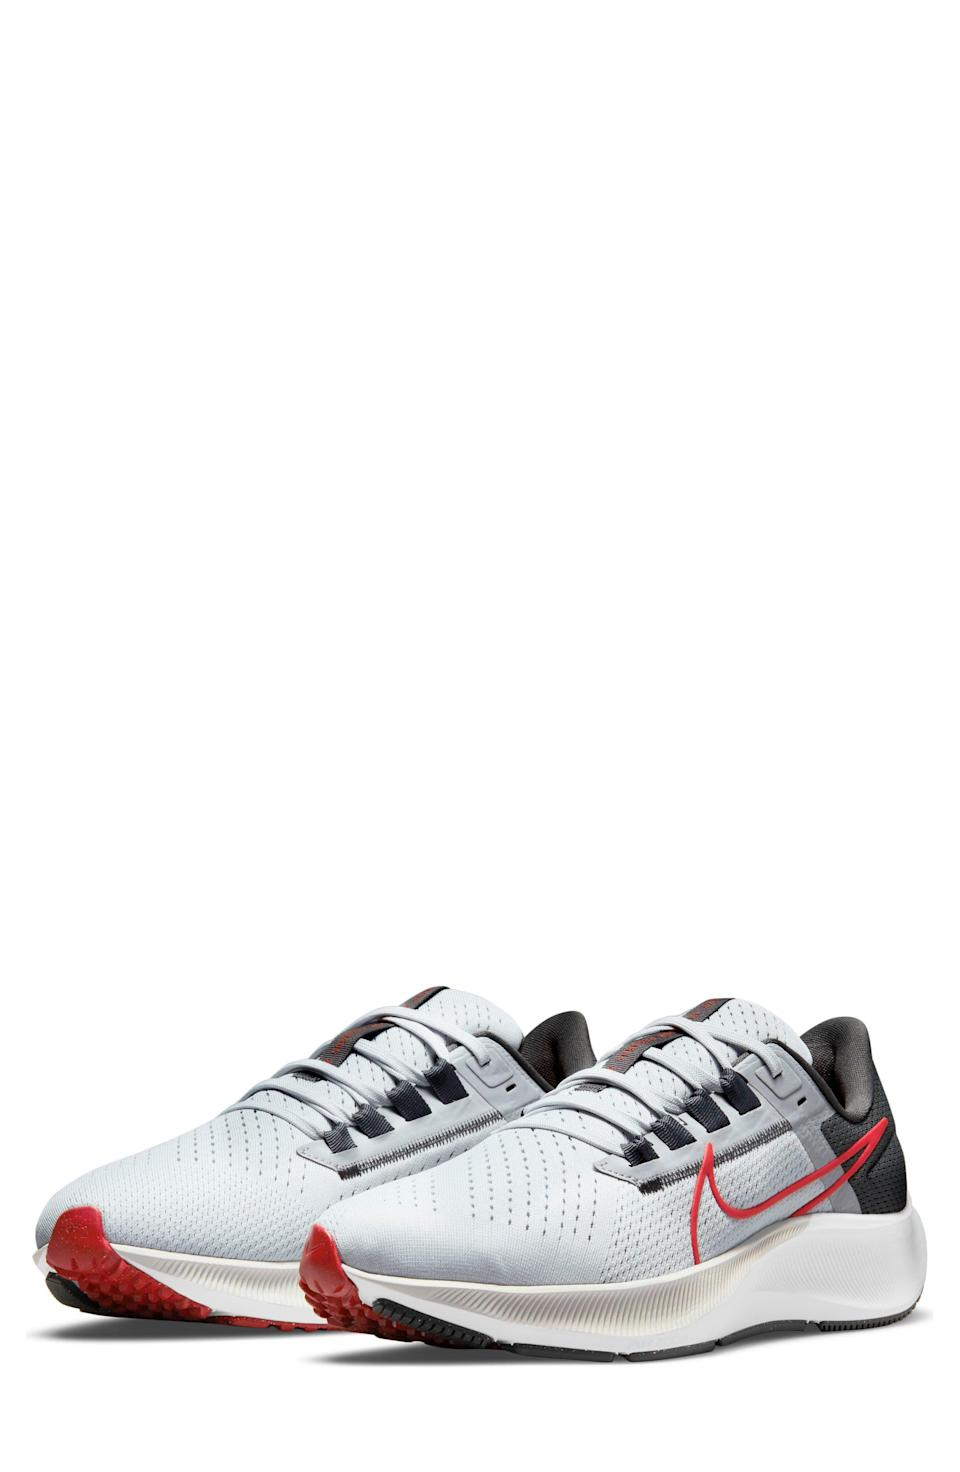 """<p><strong>NIKE</strong></p><p>nordstrom.com</p><p><a href=""""https://go.redirectingat.com?id=74968X1596630&url=https%3A%2F%2Fwww.nordstrom.com%2Fs%2Fnike-air-zoom-pegasus-38-running-shoe-men%2F5741682&sref=https%3A%2F%2Fwww.menshealth.com%2Fstyle%2Fg37081969%2Fnordstroms-anniversary-sale-best-sneakers%2F"""" rel=""""nofollow noopener"""" target=""""_blank"""" data-ylk=""""slk:BUY IT HERE"""" class=""""link rapid-noclick-resp"""">BUY IT HERE</a></p><p><del>$120<br></del><strong>$89.90</strong></p><p>If the mere thought of lacing up a pair of sneakers feels somewhat claustrophobic, feast your eyes on Nike's Air Zoom Pegasus 38 sneakers. This pair is designed with more room in the forefront and toes, making your stride more cozy.</p>"""